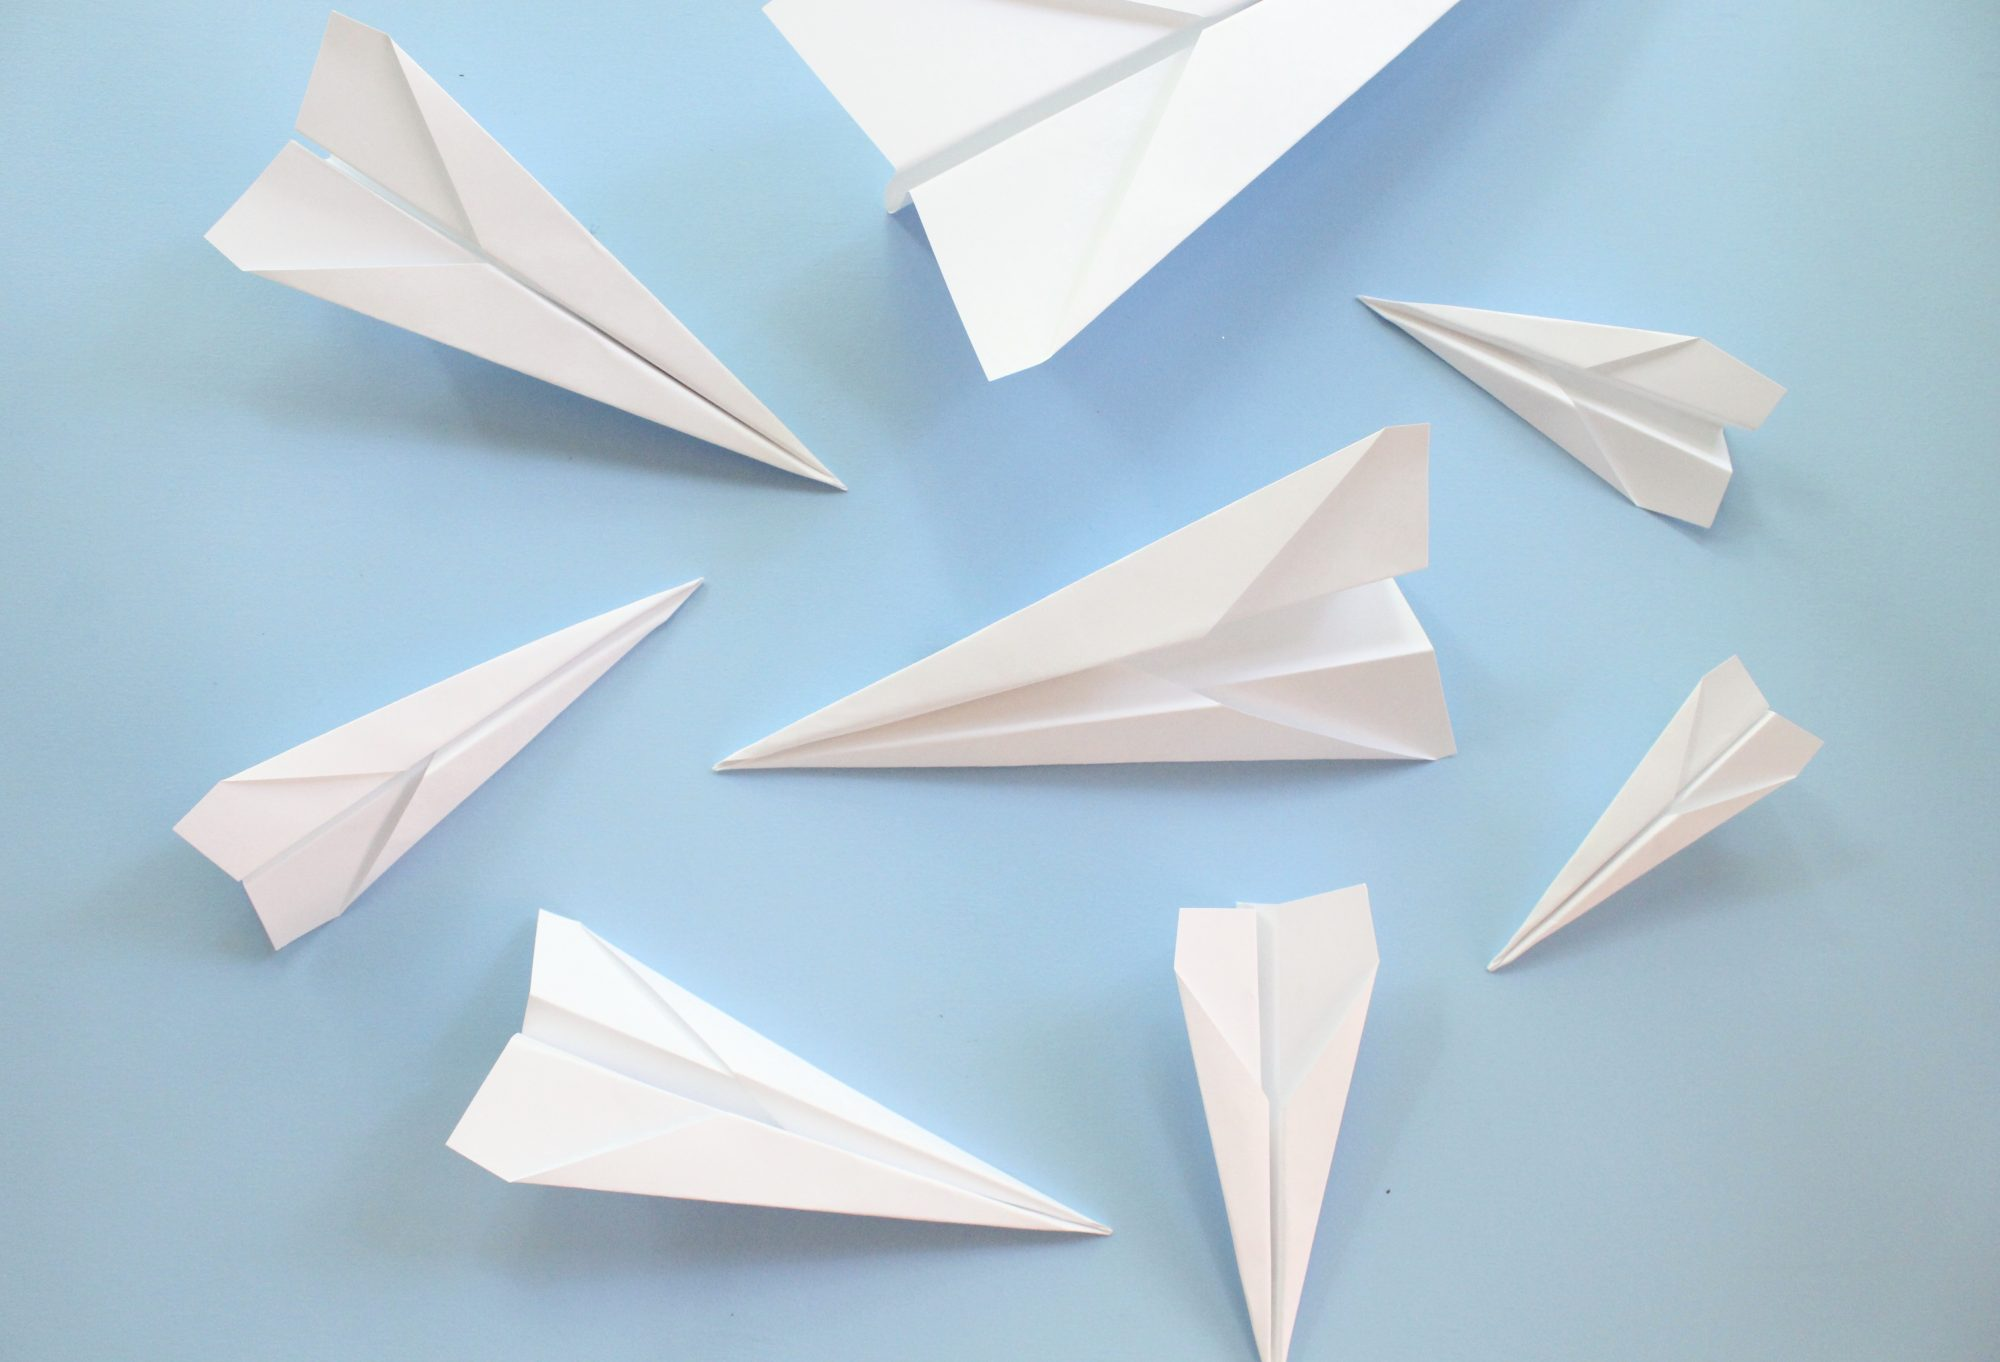 folded paper airplanes on blue surface